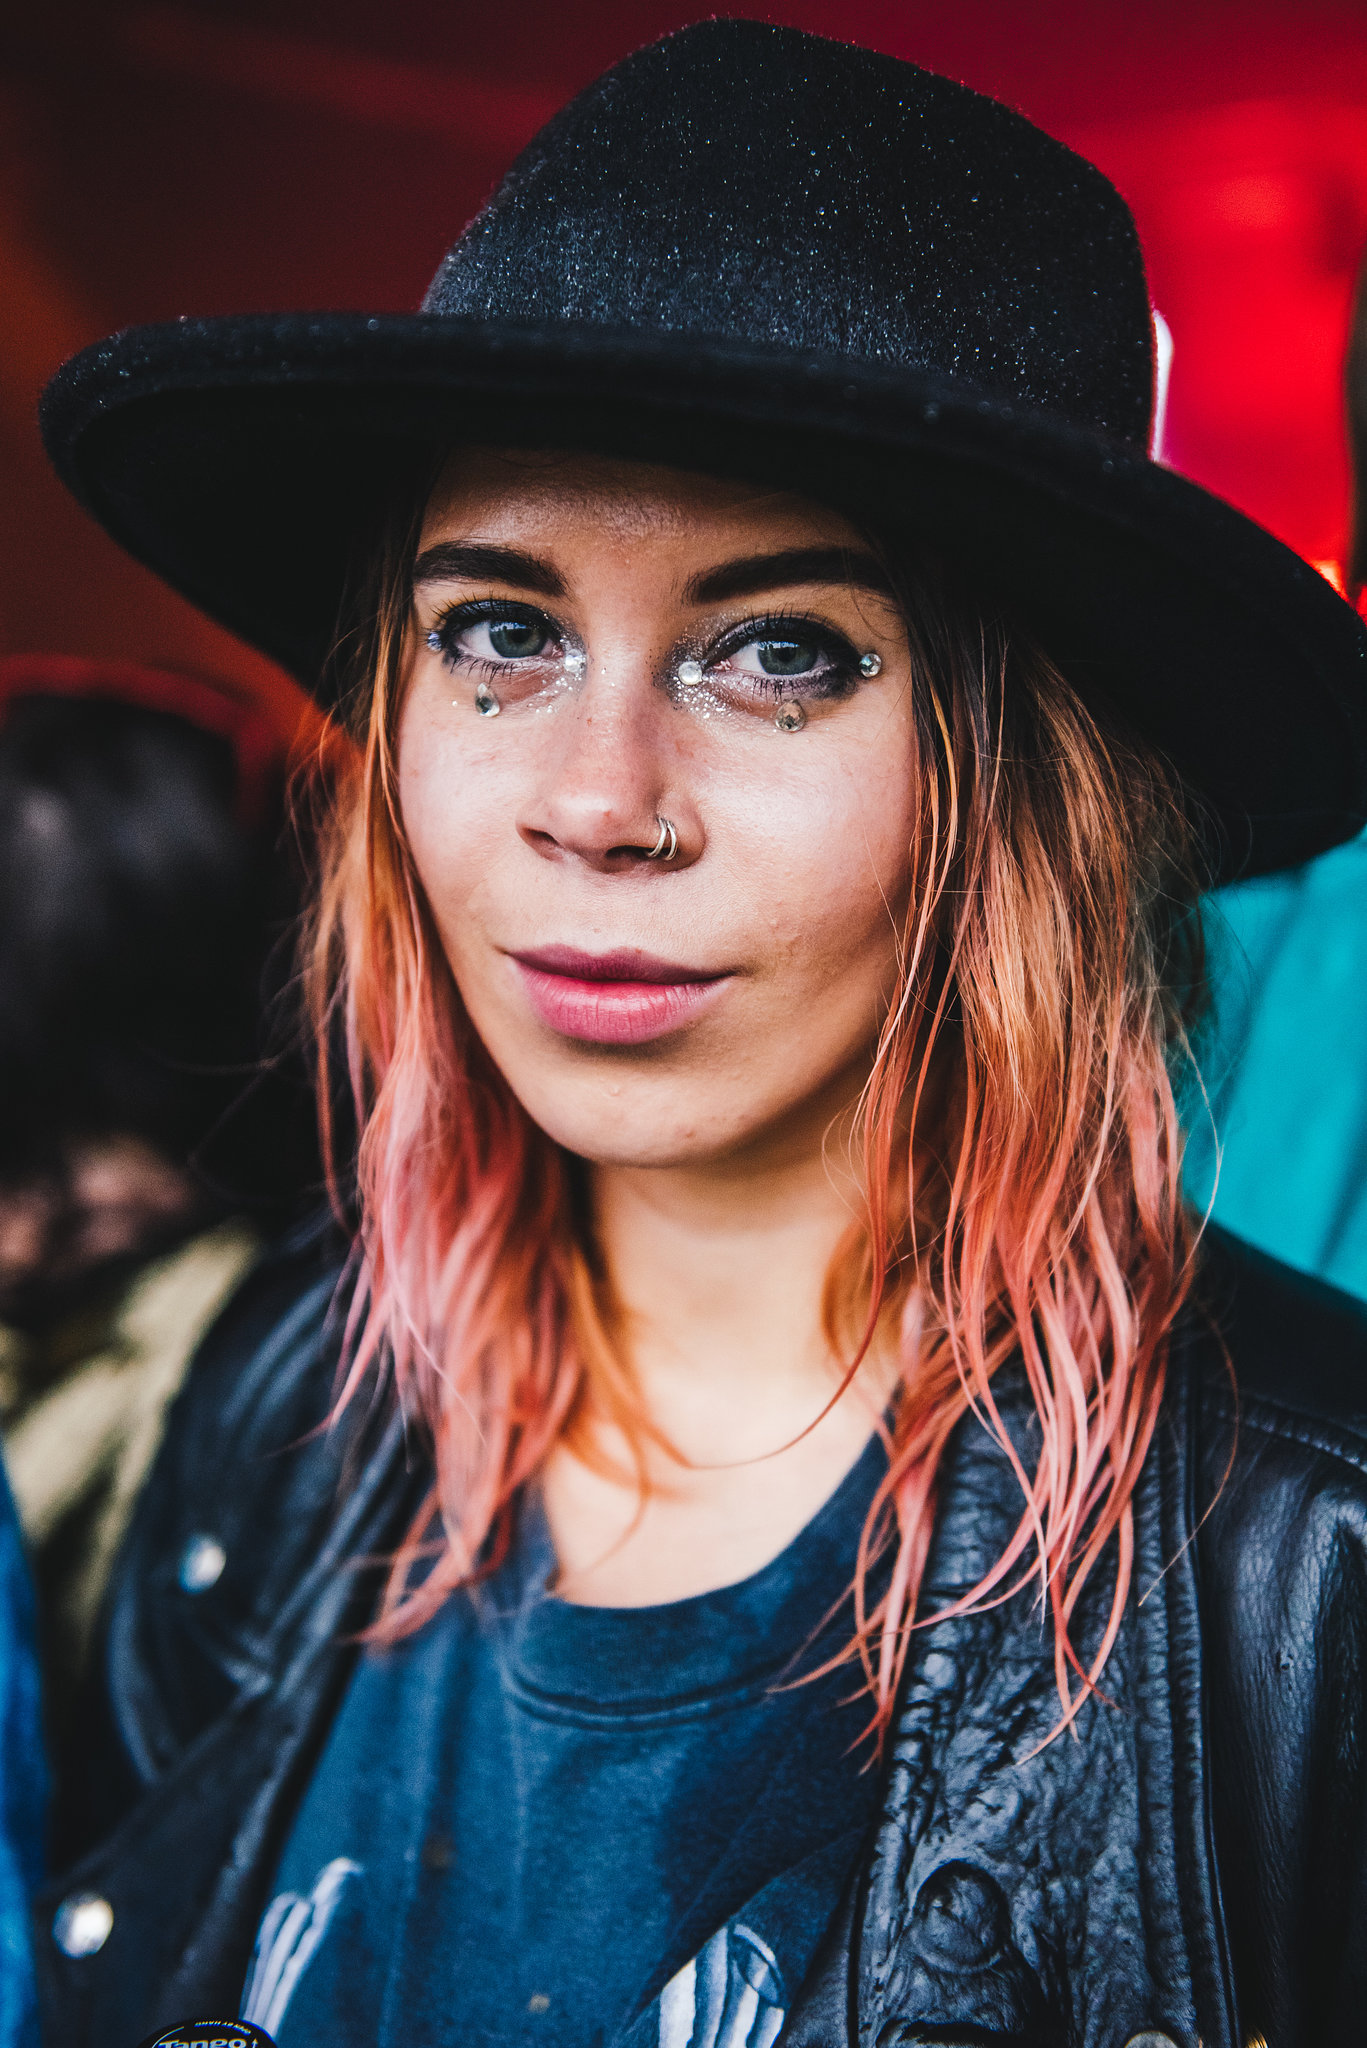 Justine Trickett - Secret Garden Party 2015 - 4e3b4014-324a-11e5-bf12-aee5d44592c4 - Web